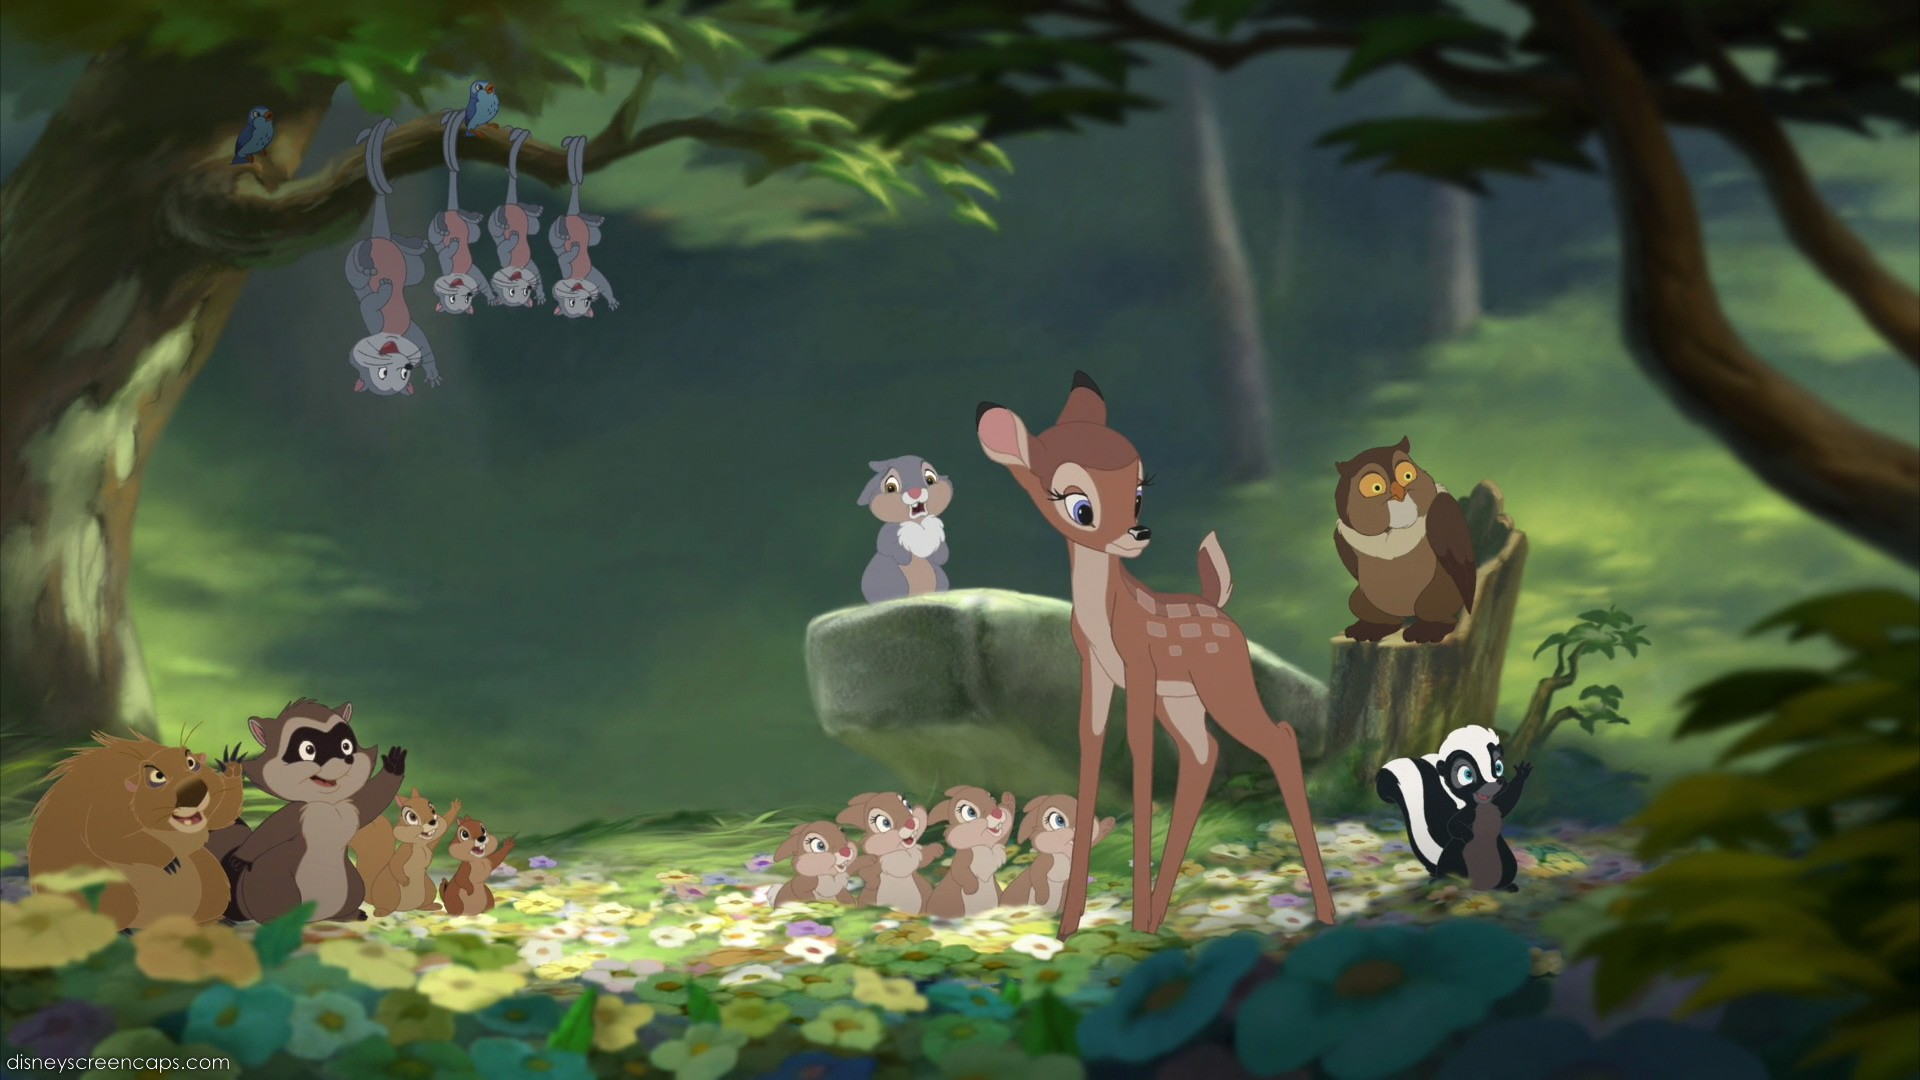 Chip And Dale Wallpaper Hd Bambi Mickey Mouse Pictures